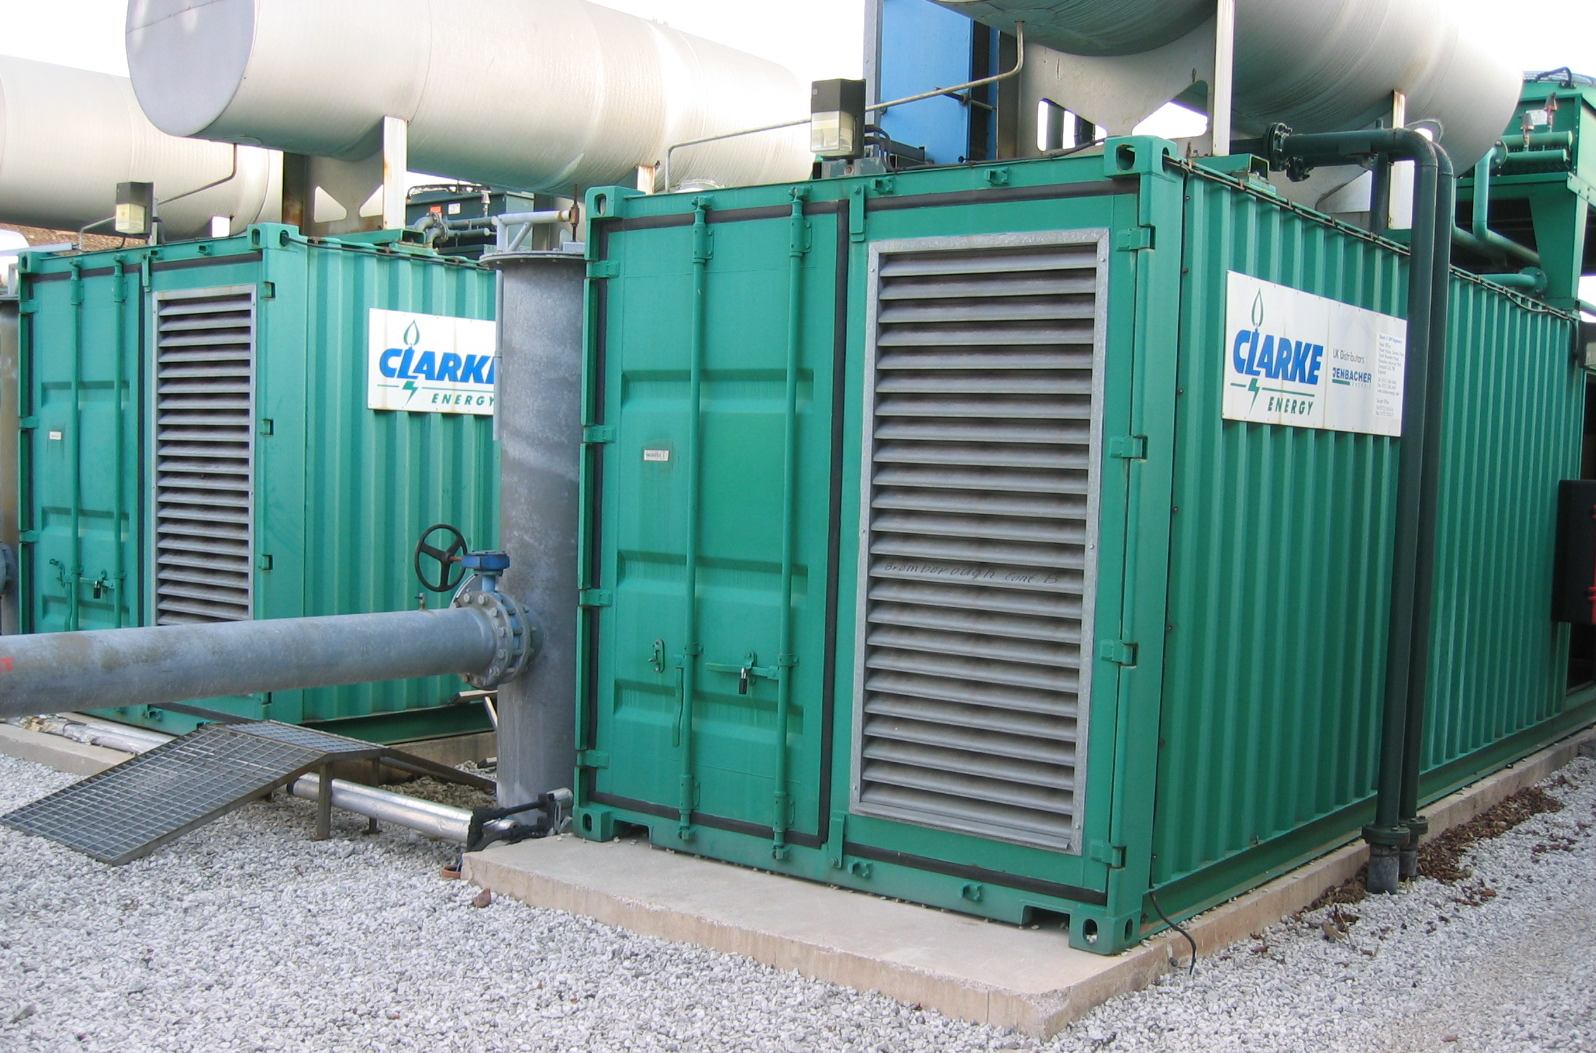 Clarke Energy Jenbacher gas generators installed at Brombrough Dock landfill site, Liverpool.